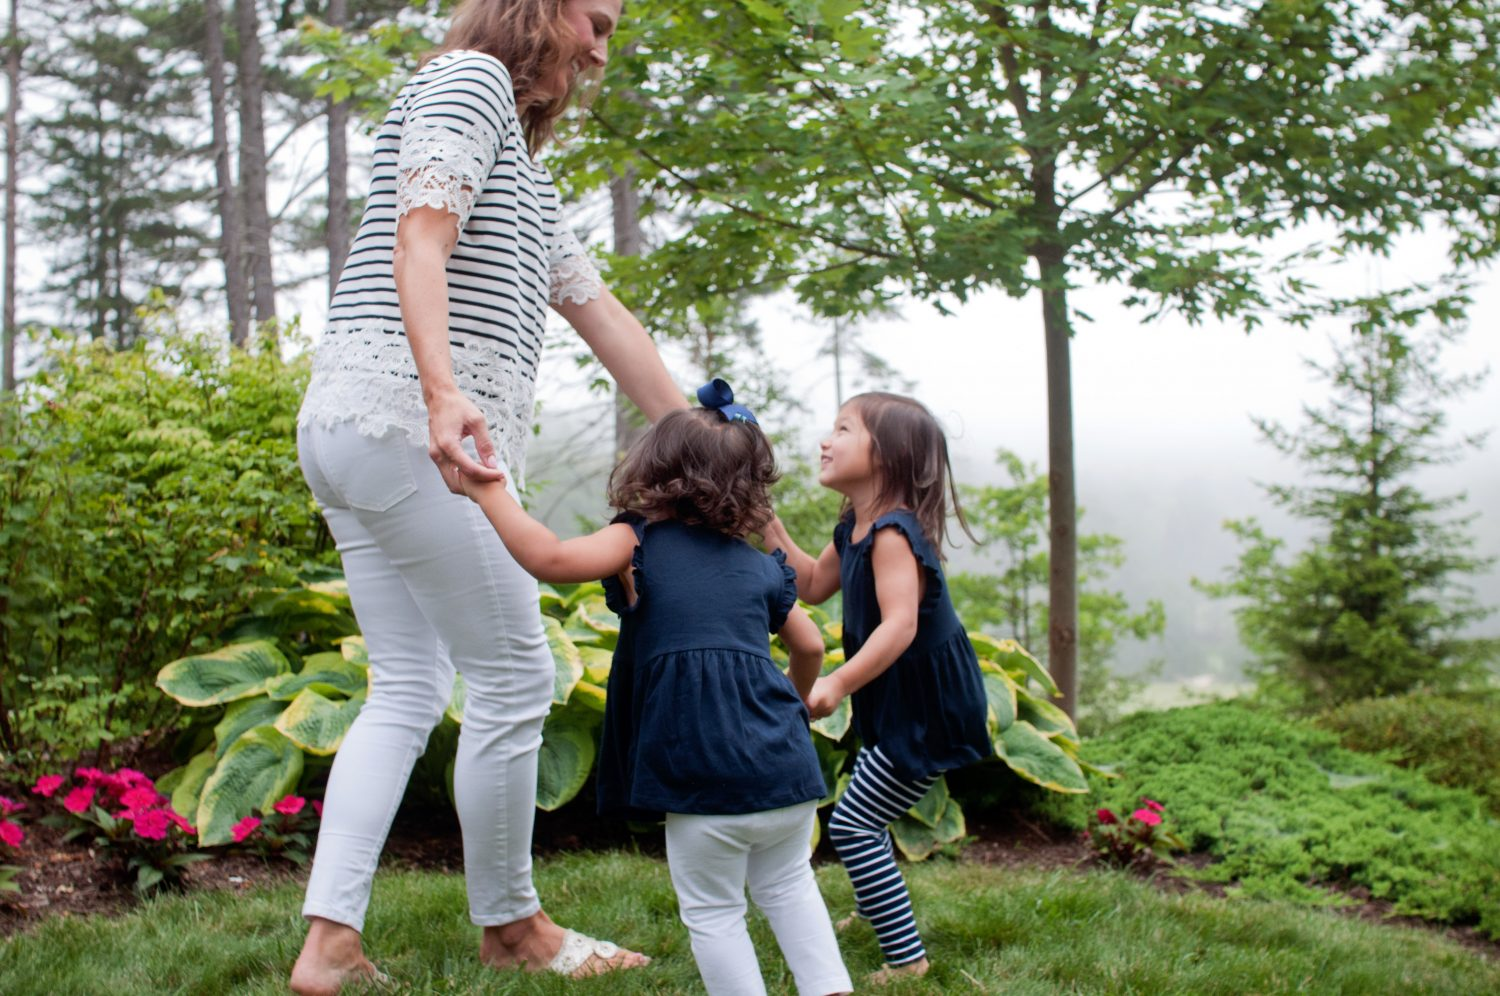 mother playing ring-around-the-rosey with two young daughters